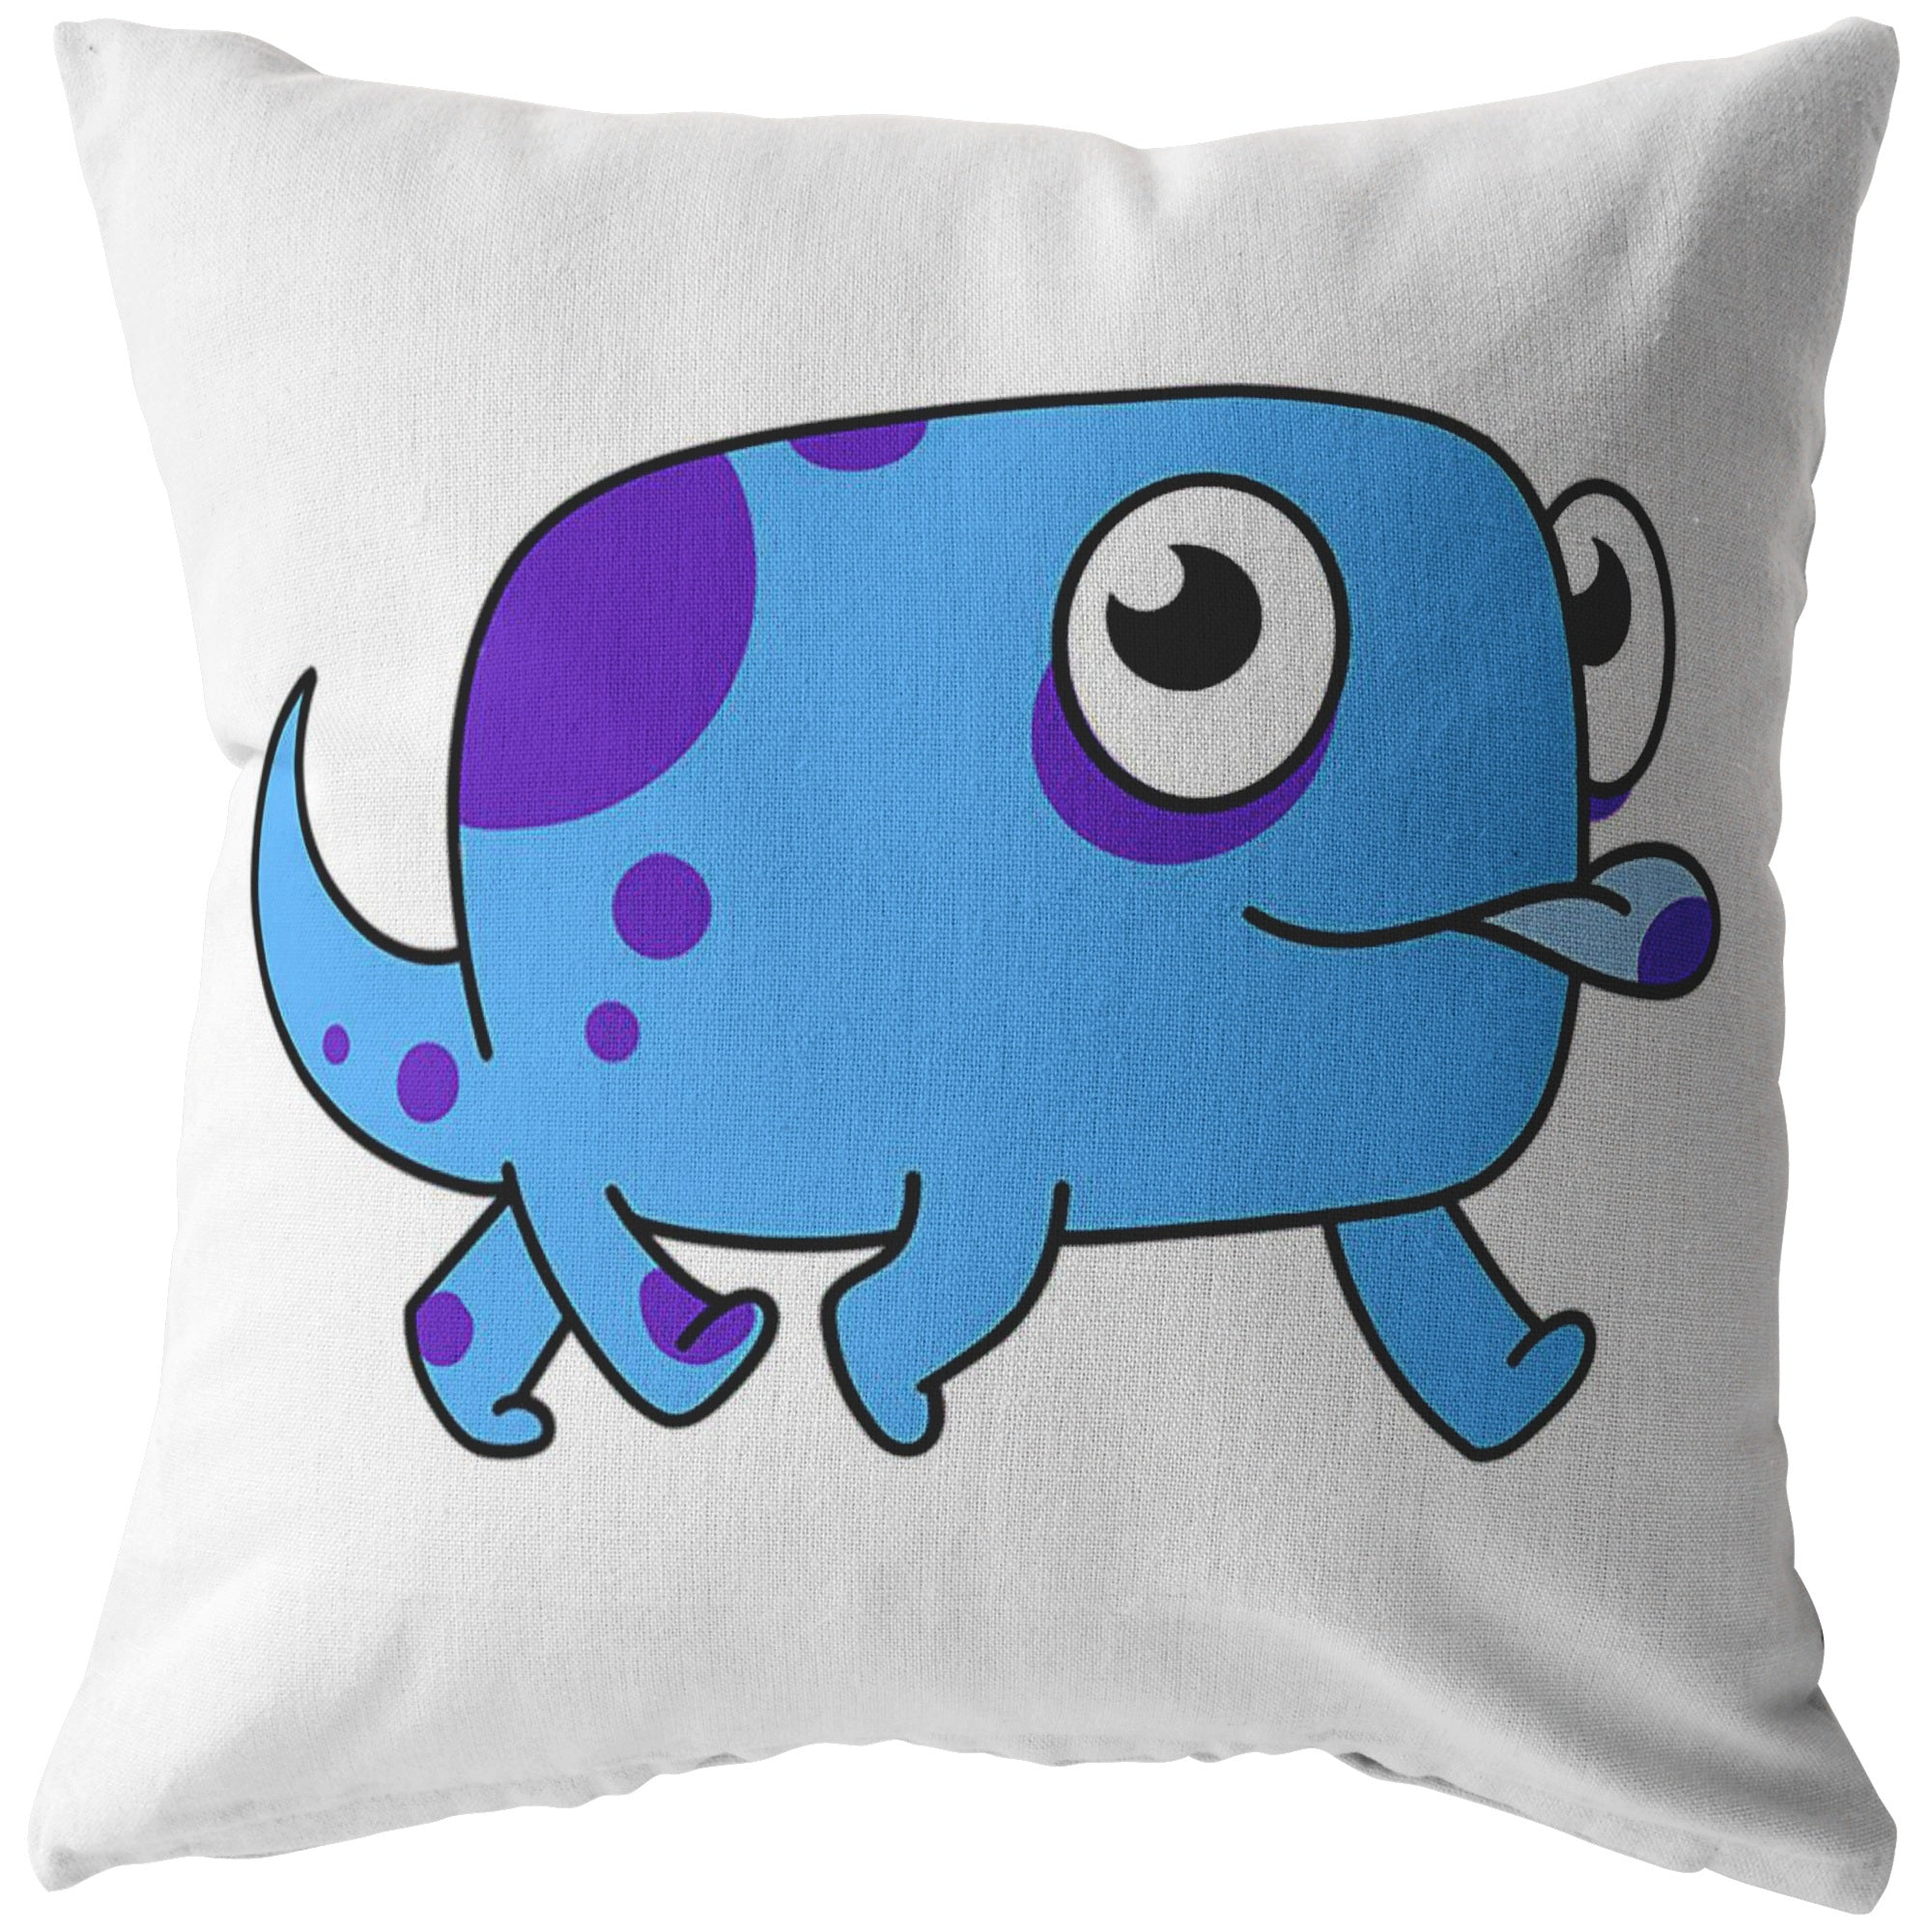 Hashi the Hashimoto's Disease Monster Pillow - The Unchargeables